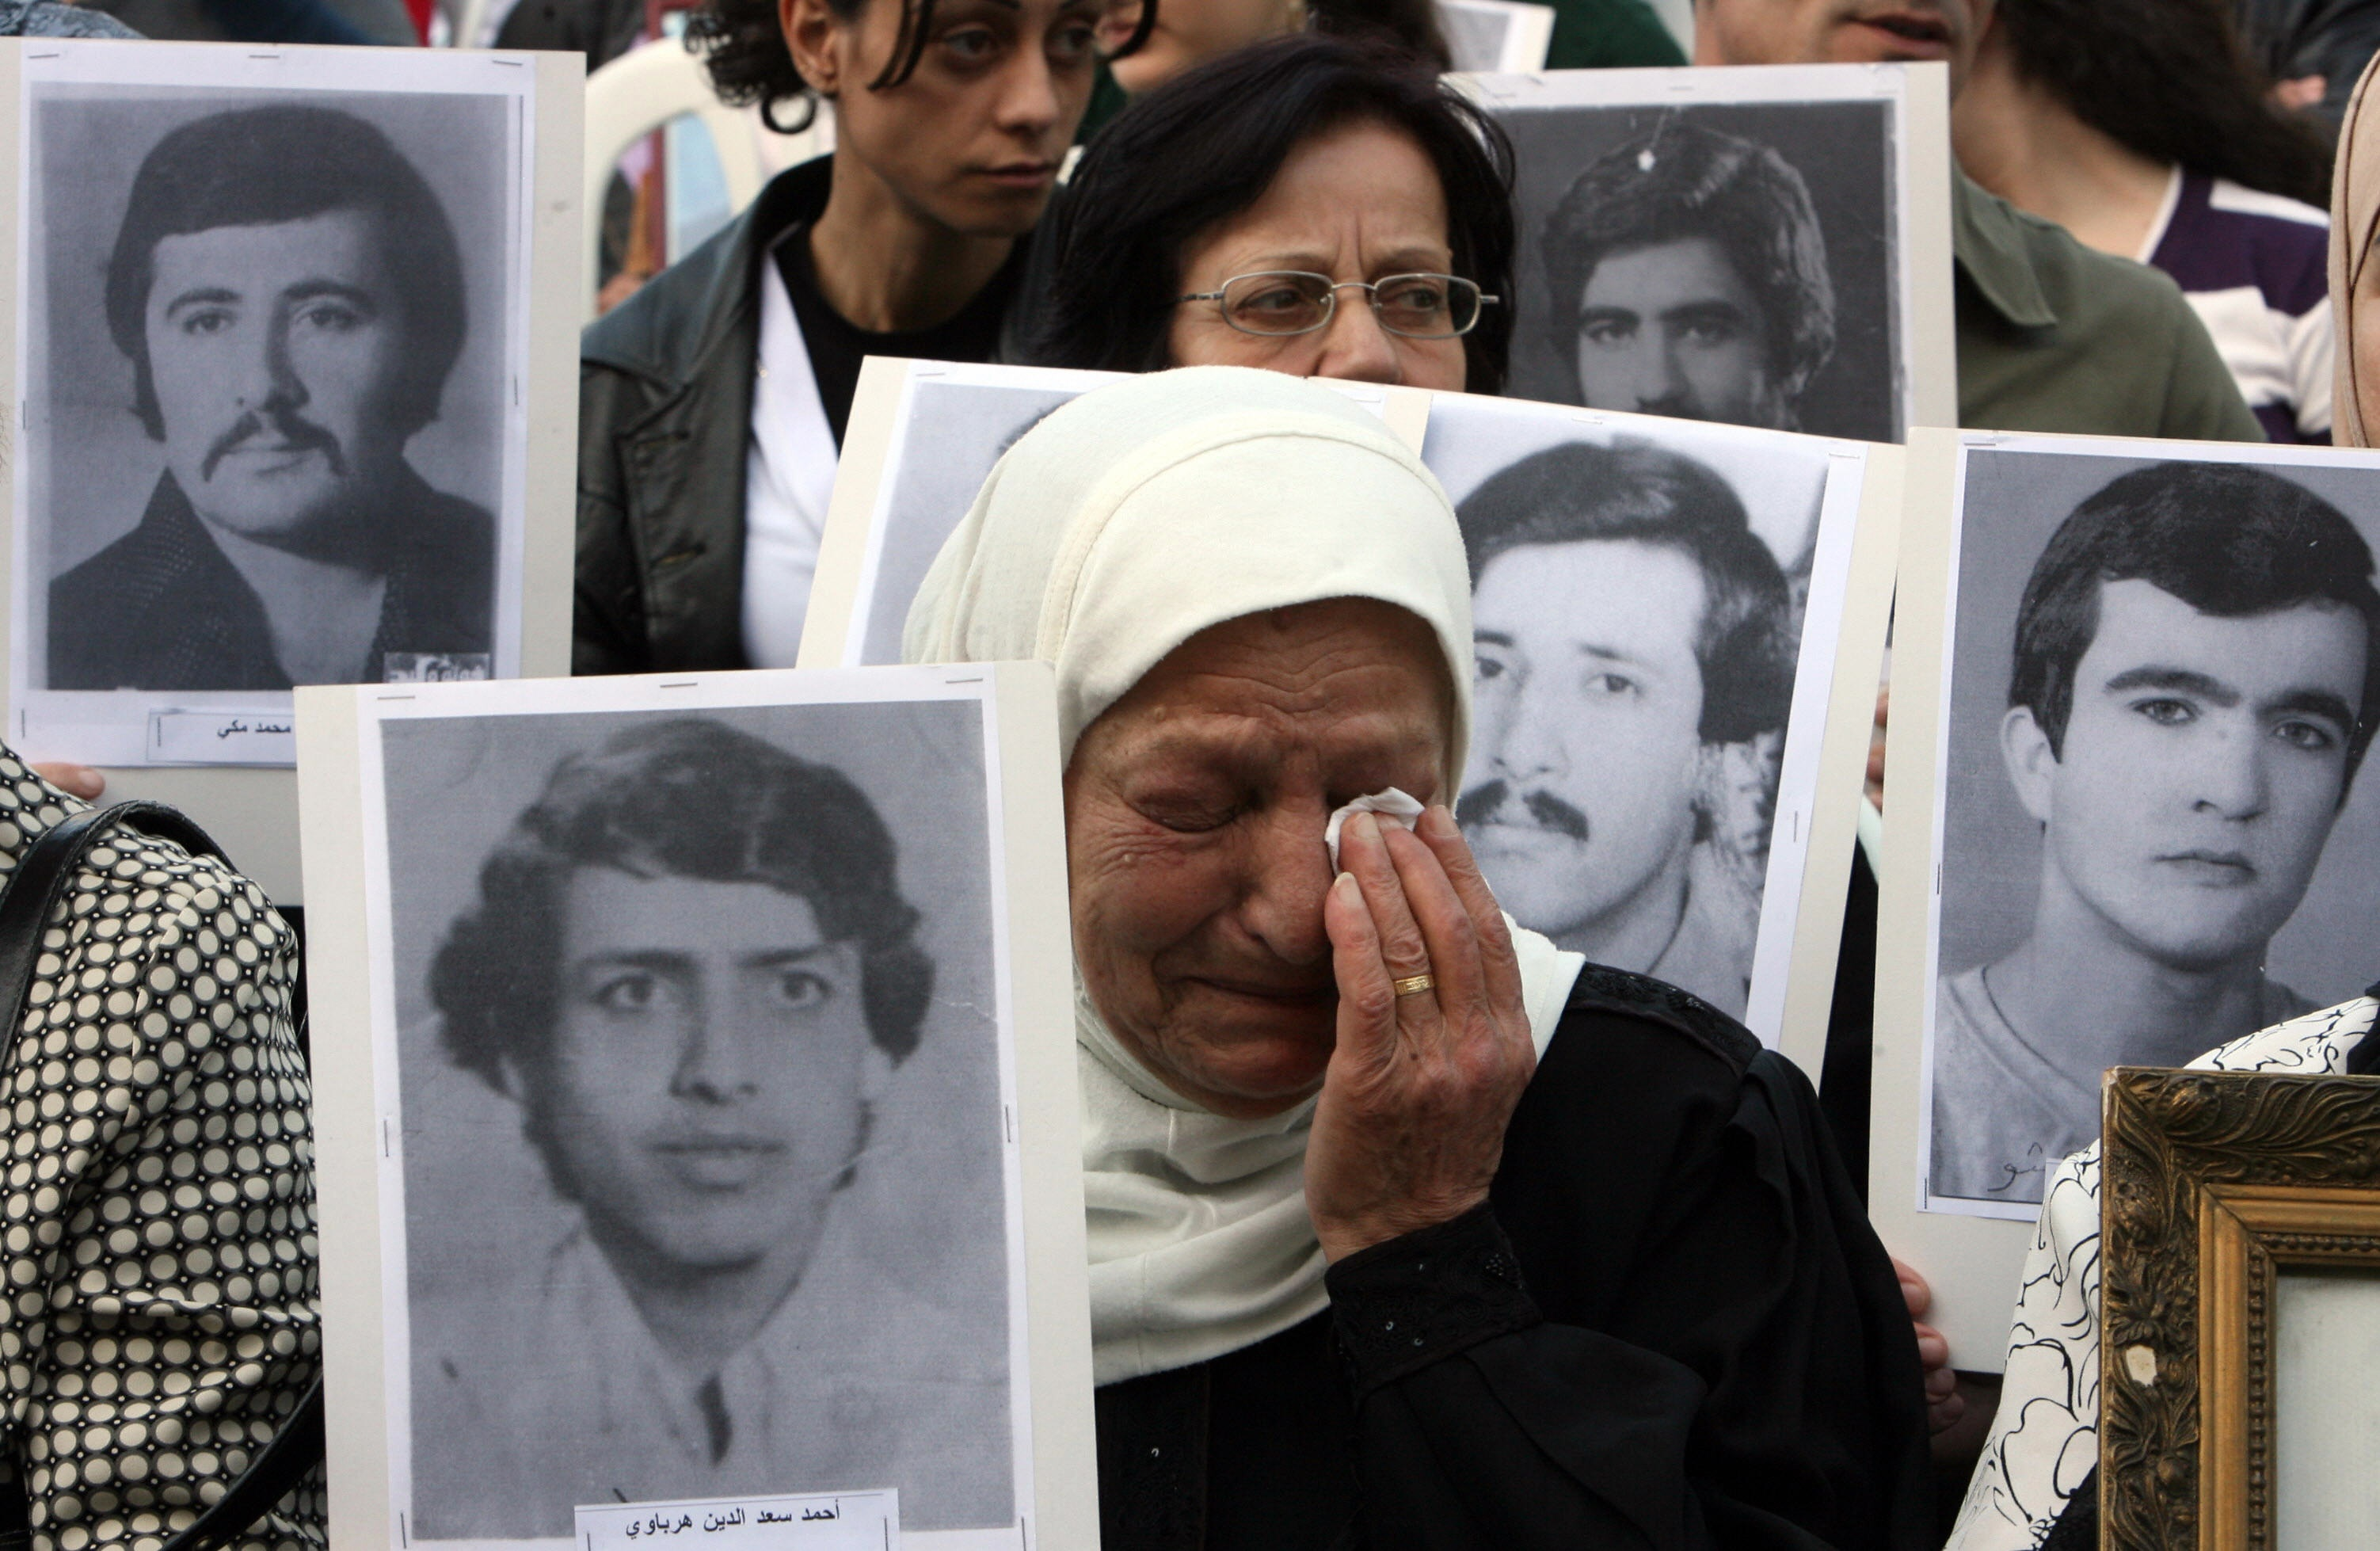 RAMZI HAIDAR/AFP/Getty Images. Relatives of persons missing during the Lebanese civil war gather in Beirut on April 13, 2009, to mark the 34th anniversary of the outbreak of the Lebanese civil war (1975-1990). Over 150,000 were killed during the war, which opened up fault-lines across society that are still evident today.